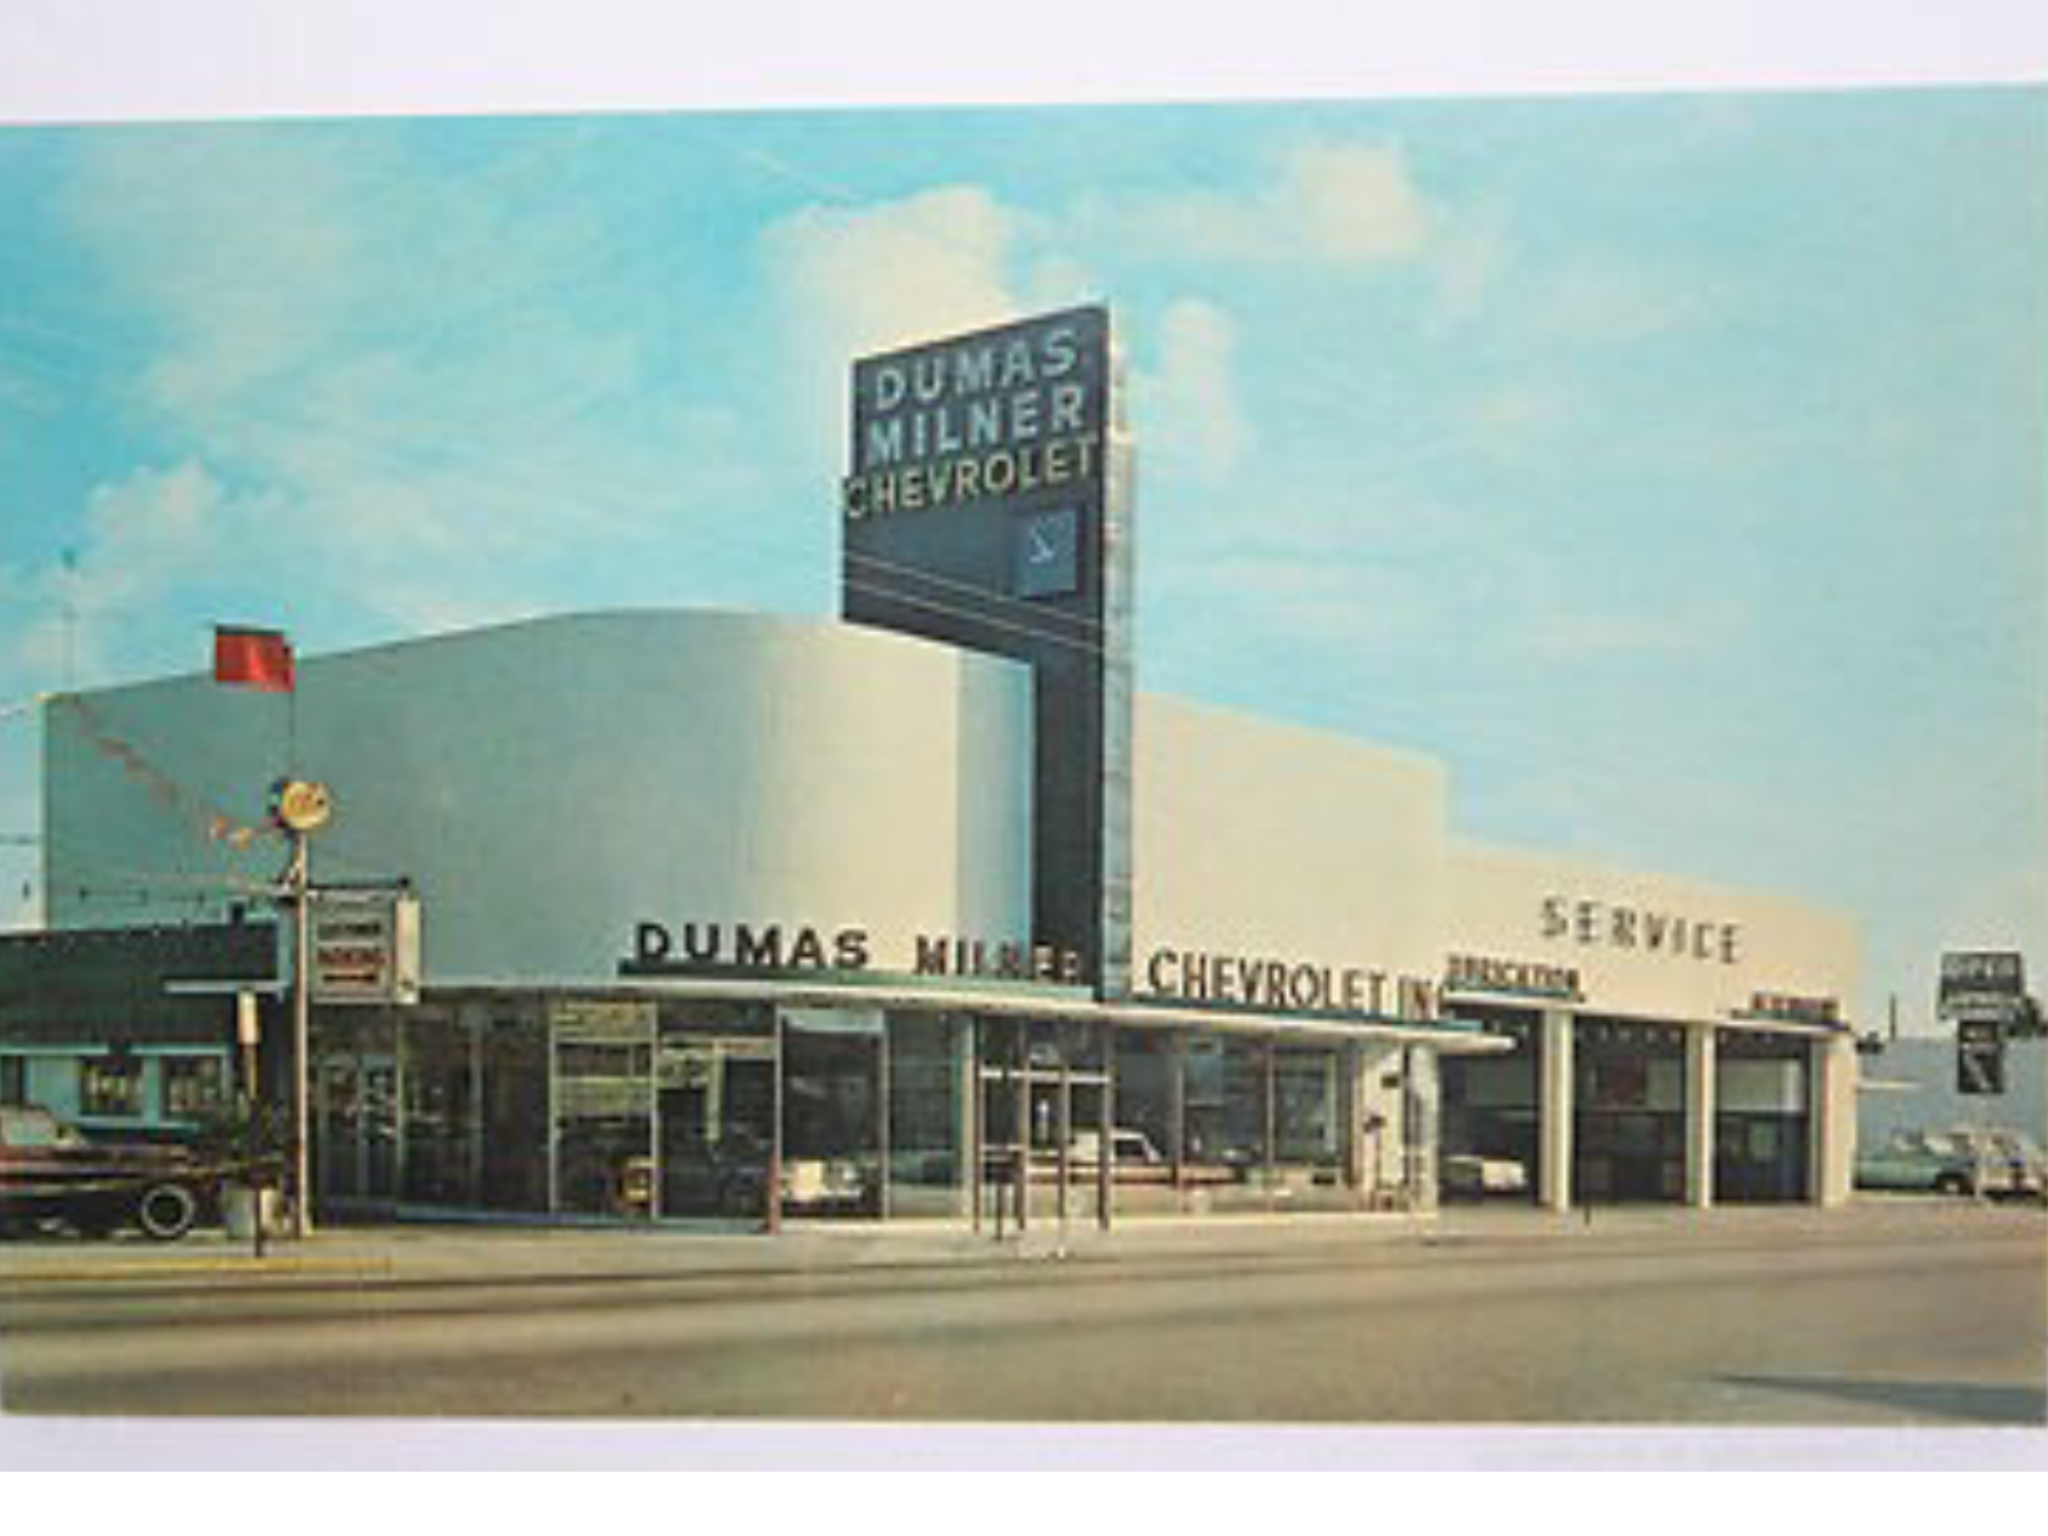 1964 Dumas Milner Chevrolet Dealership Miami Florida Chevrolet Dealership Chevrolet Dealership